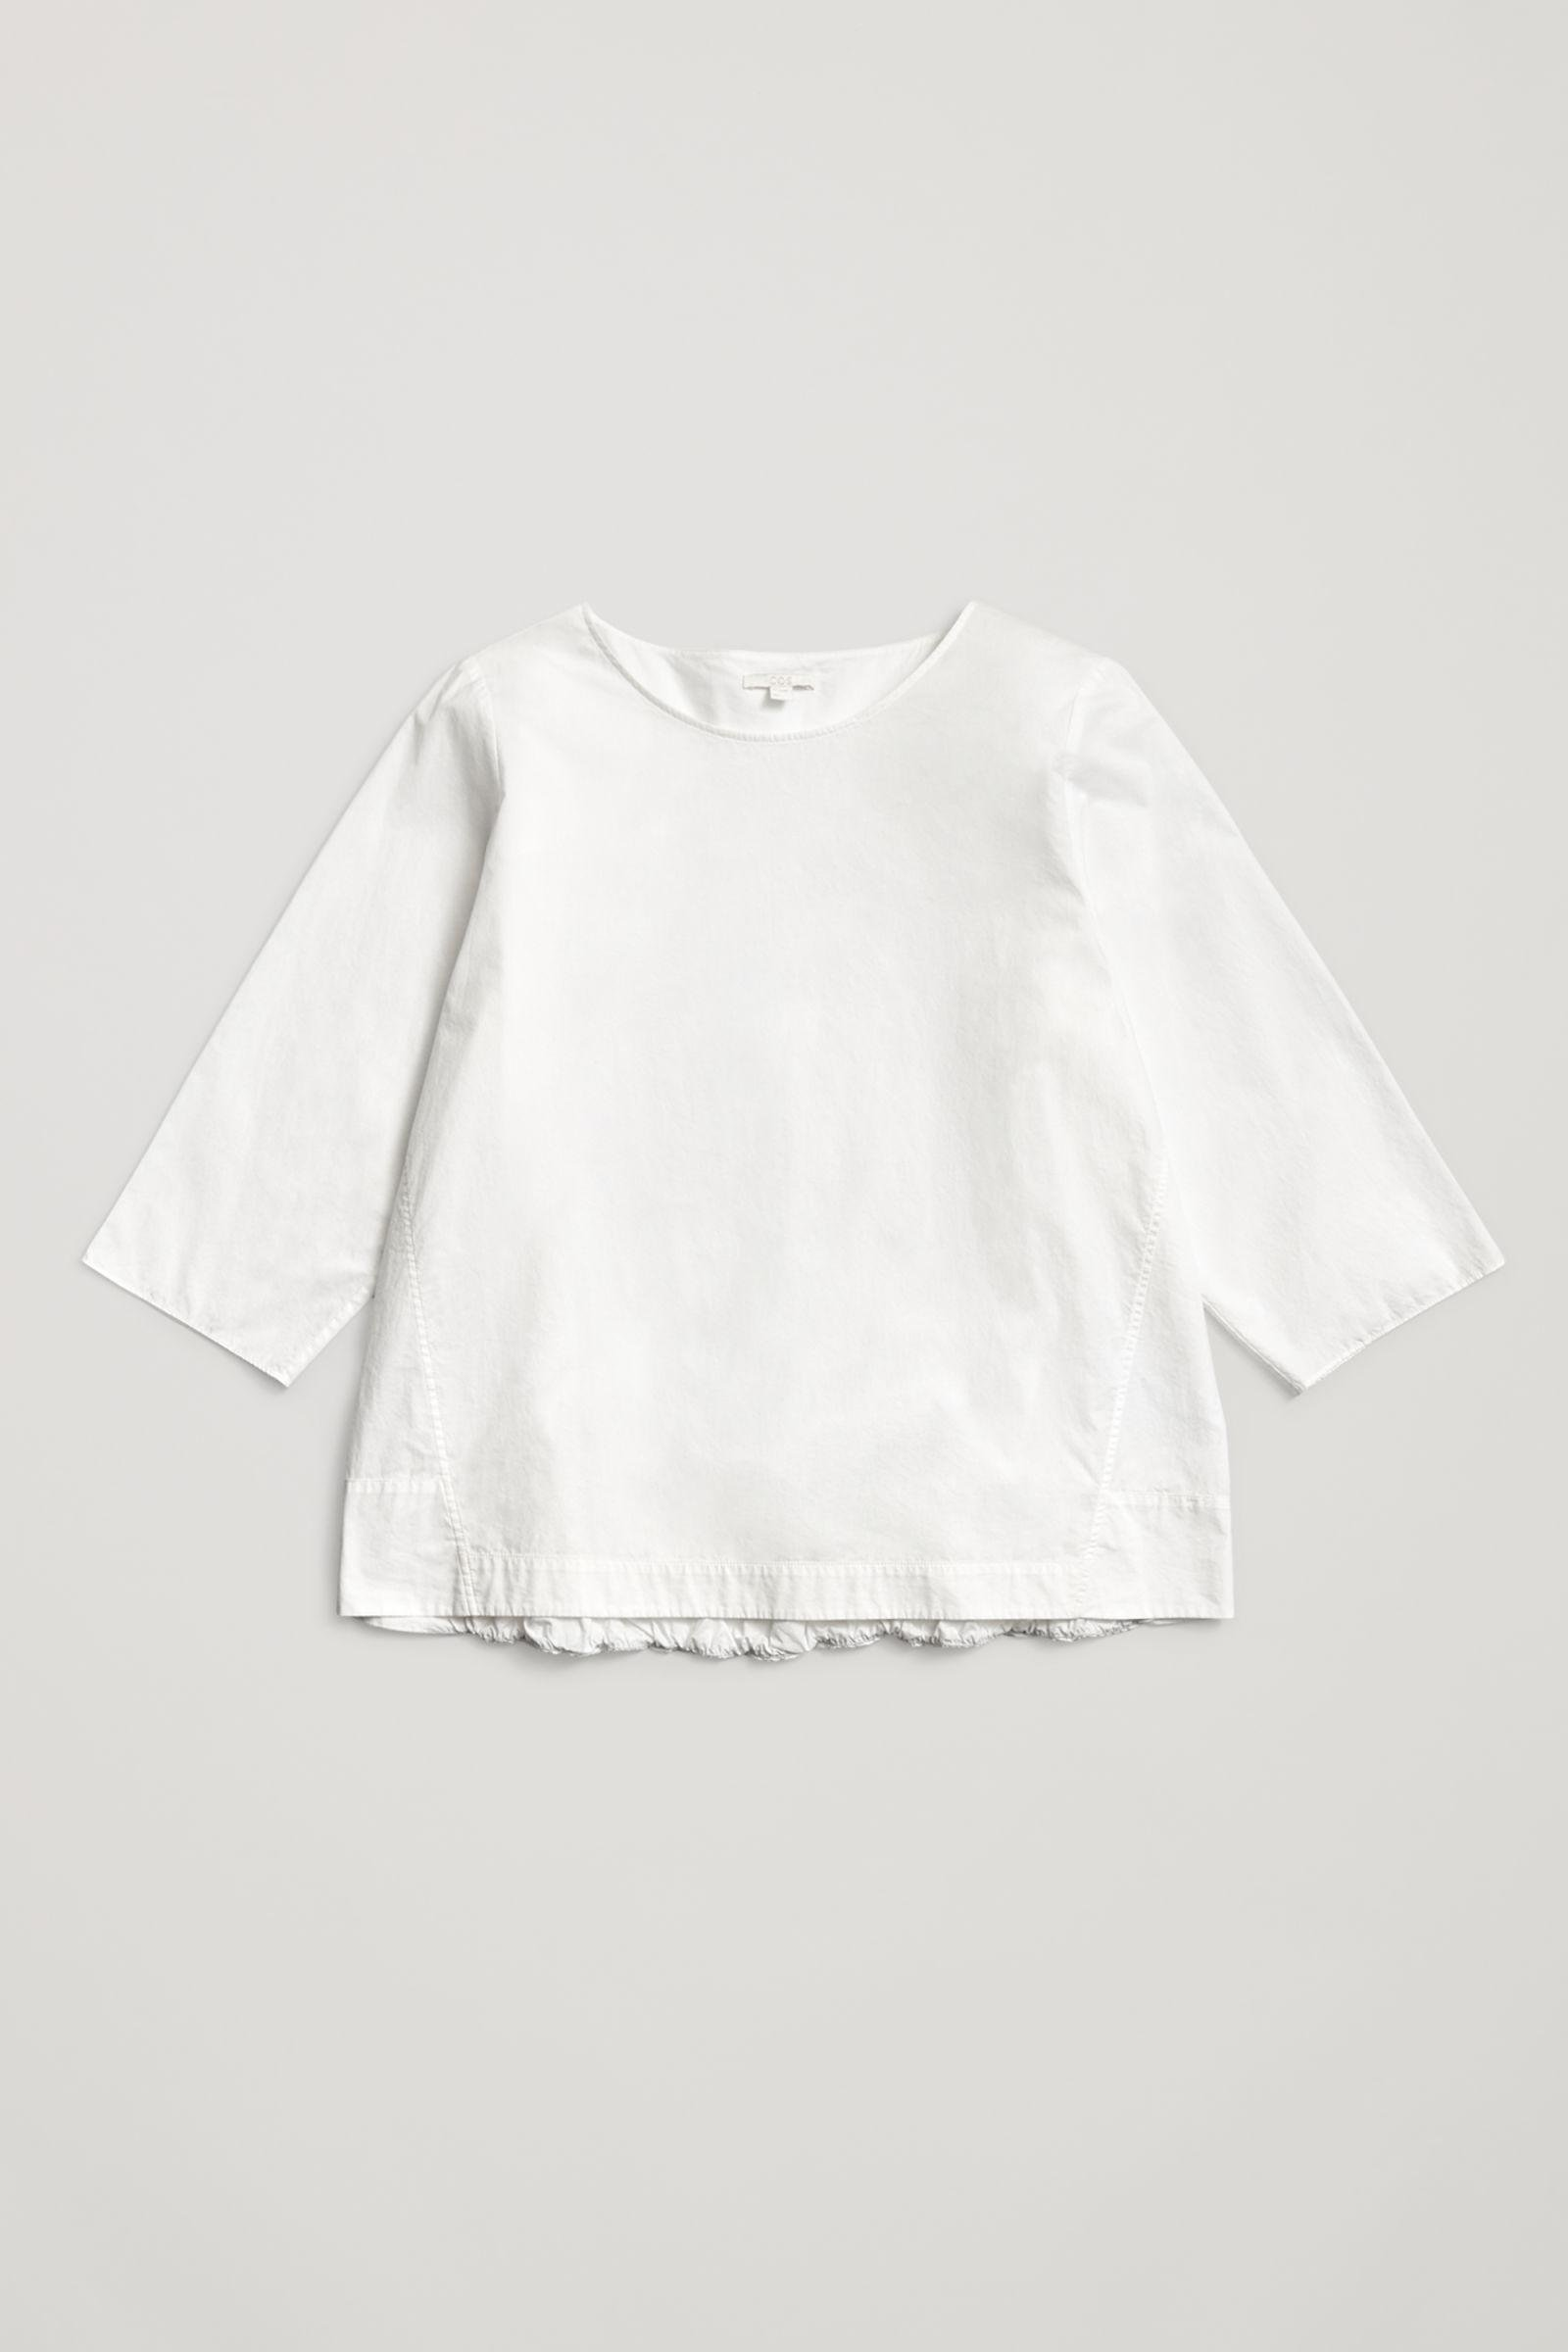 MADE BY YOU COTTON TOP 3